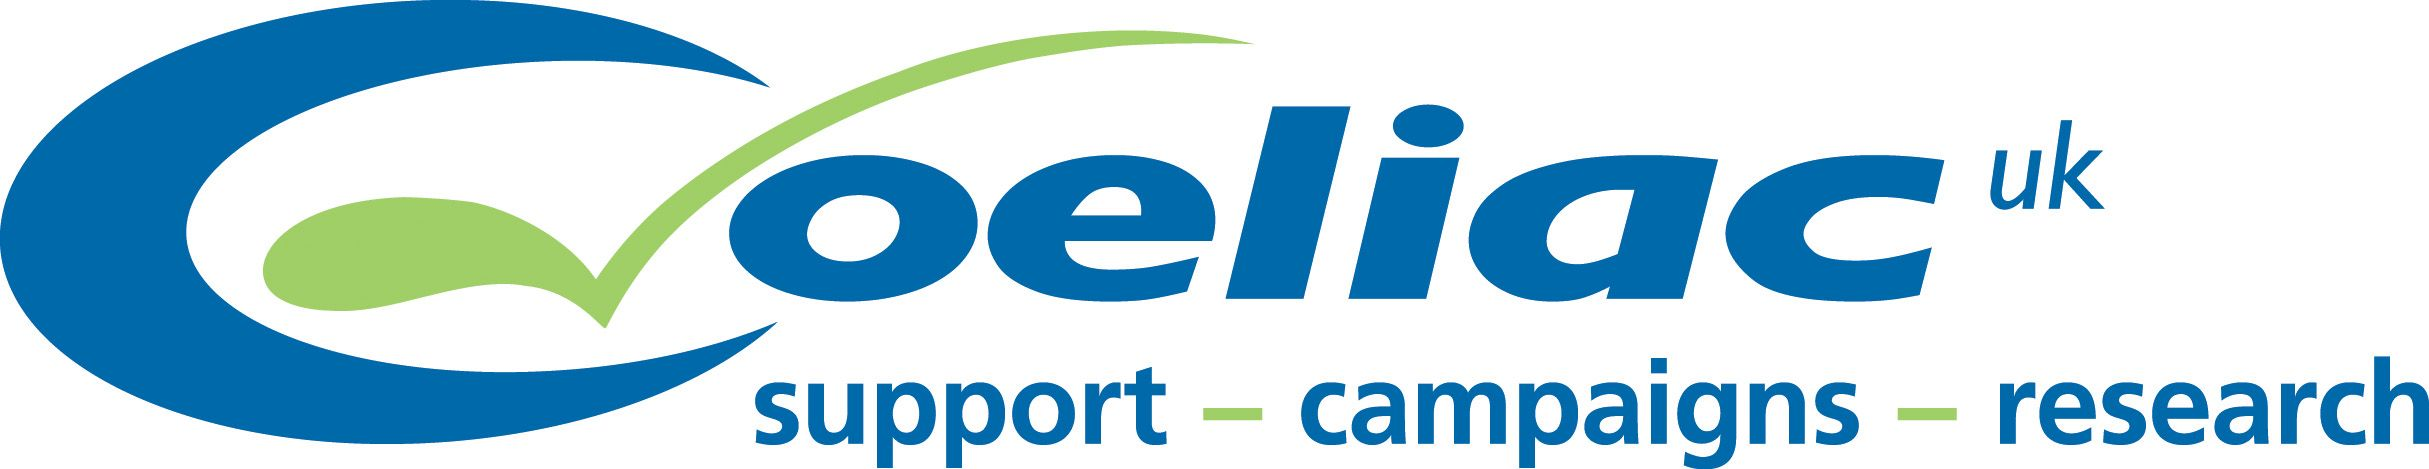 Coeliac UK – Growth Strategies - Logo